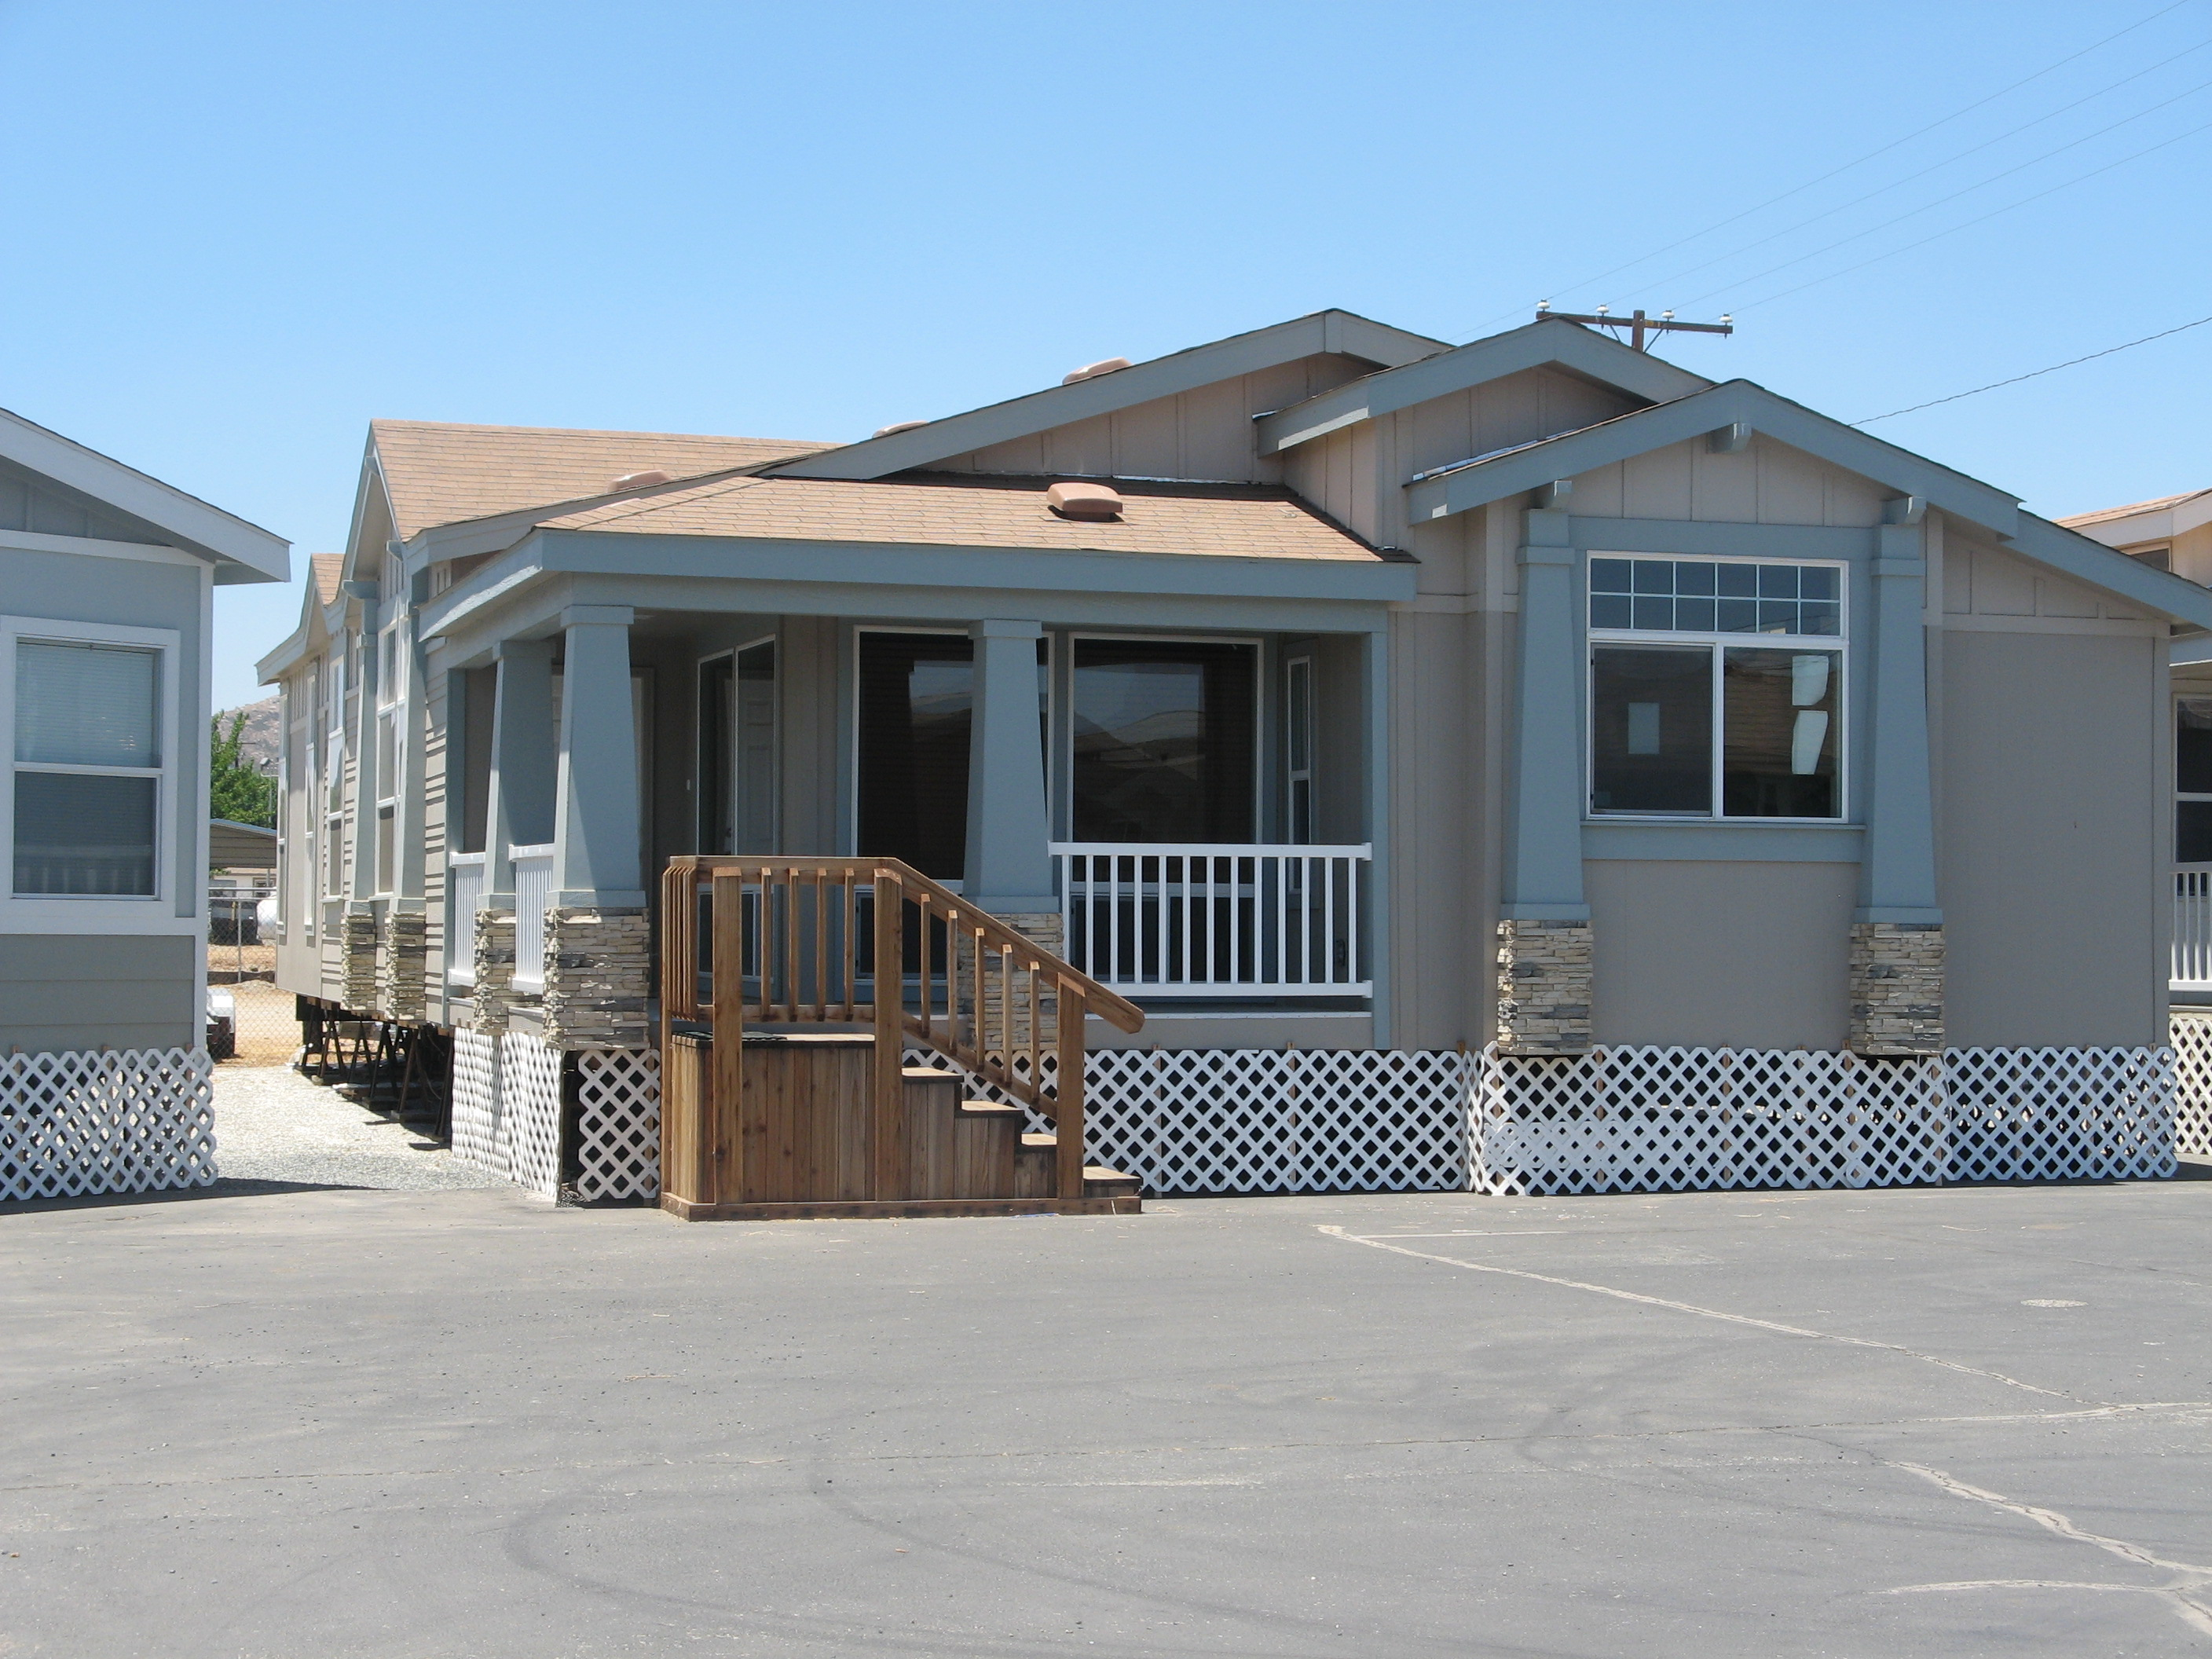 Wc 28 ma williams manufactured homes manufactured and for Home models plans